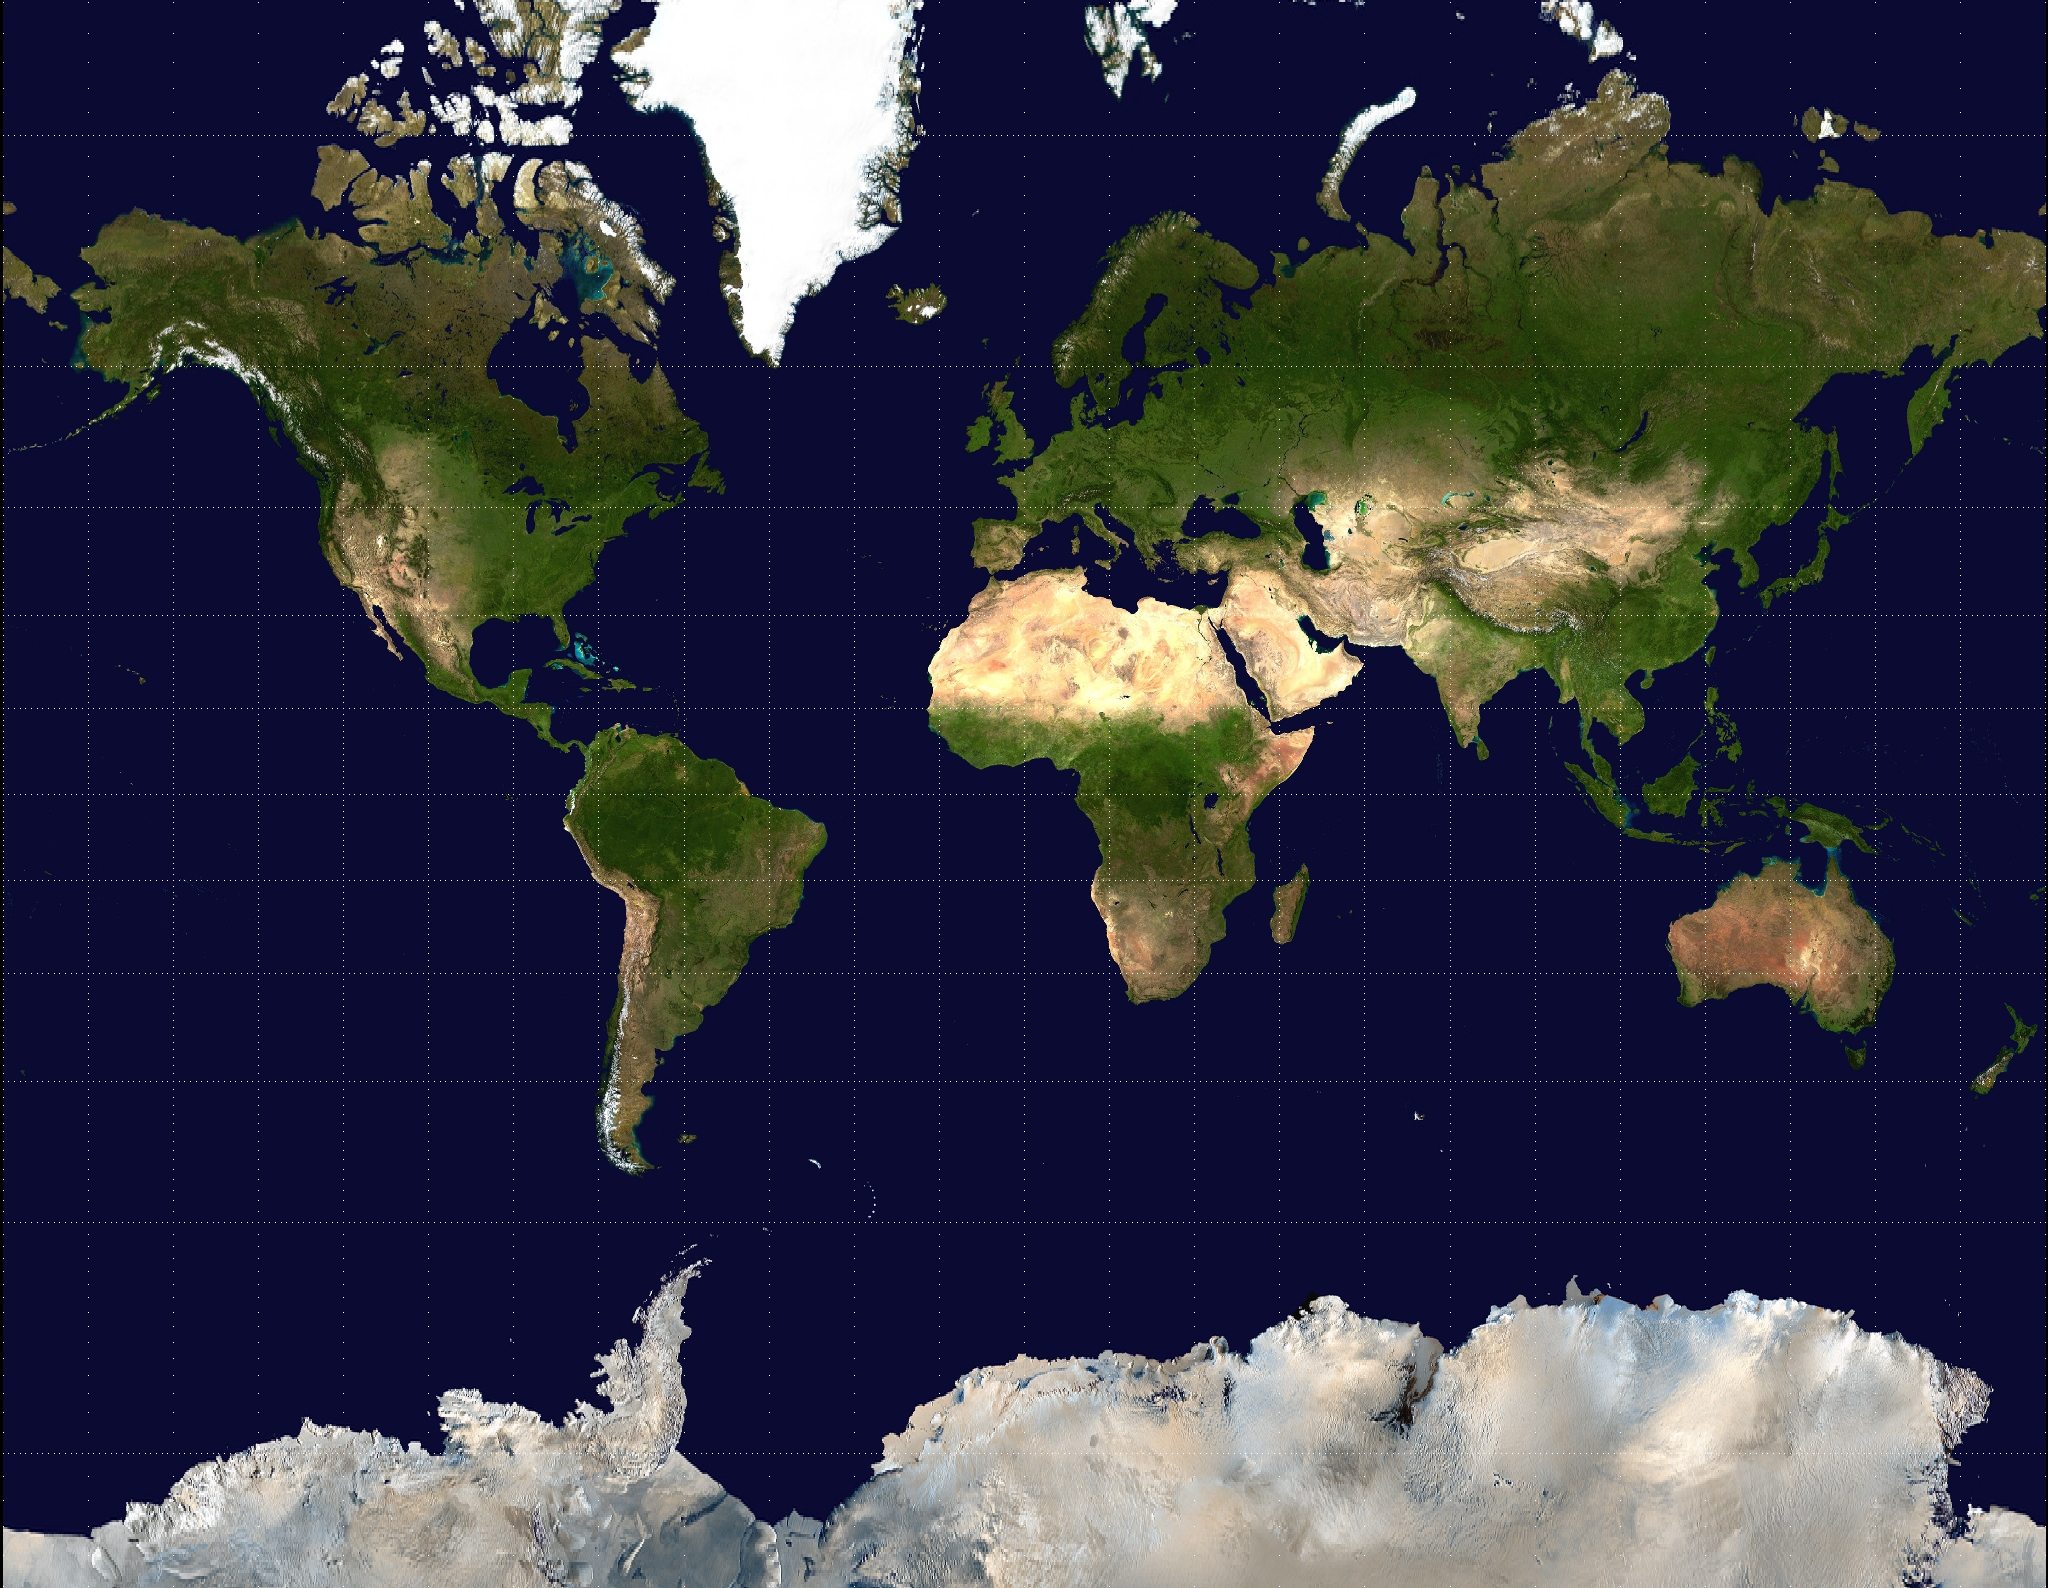 Map Library Maps Of The World Maps Of All Countries In The - Earth satellite maps online